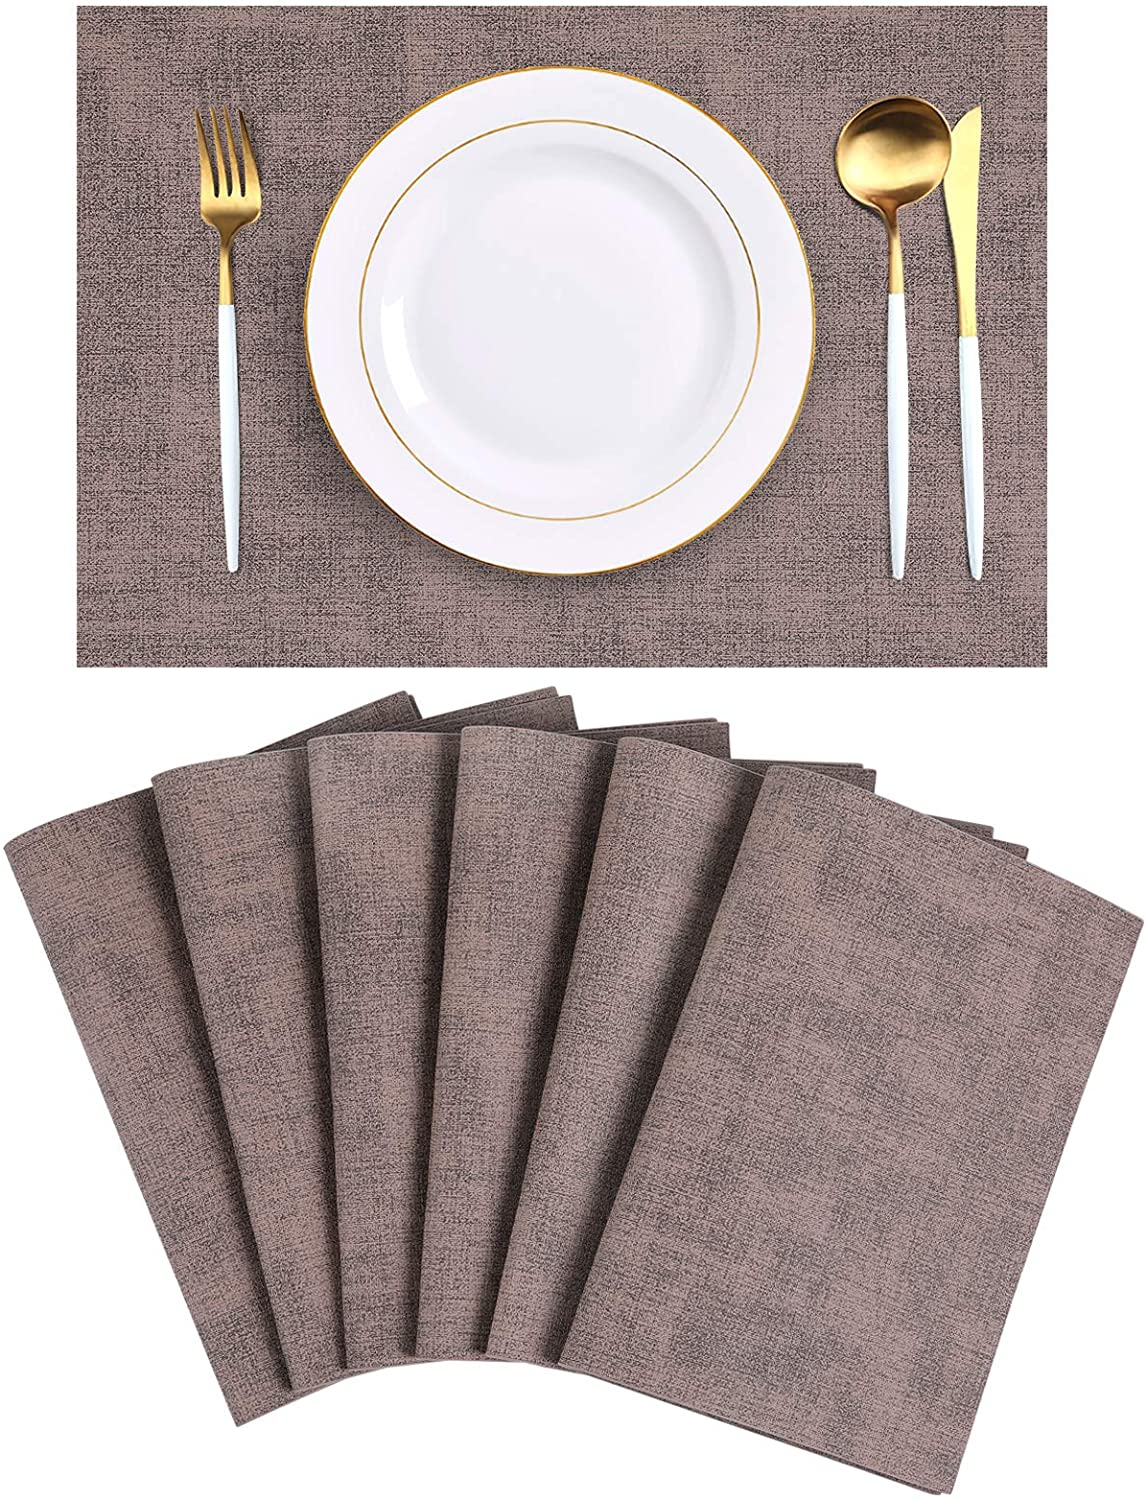 homing Faux Leather Brown Placemats Set of 6 - Waterproof Heat-Resistant Anti-Skid Place mats for Dining Table, Stain-Resistant Easy to Clean